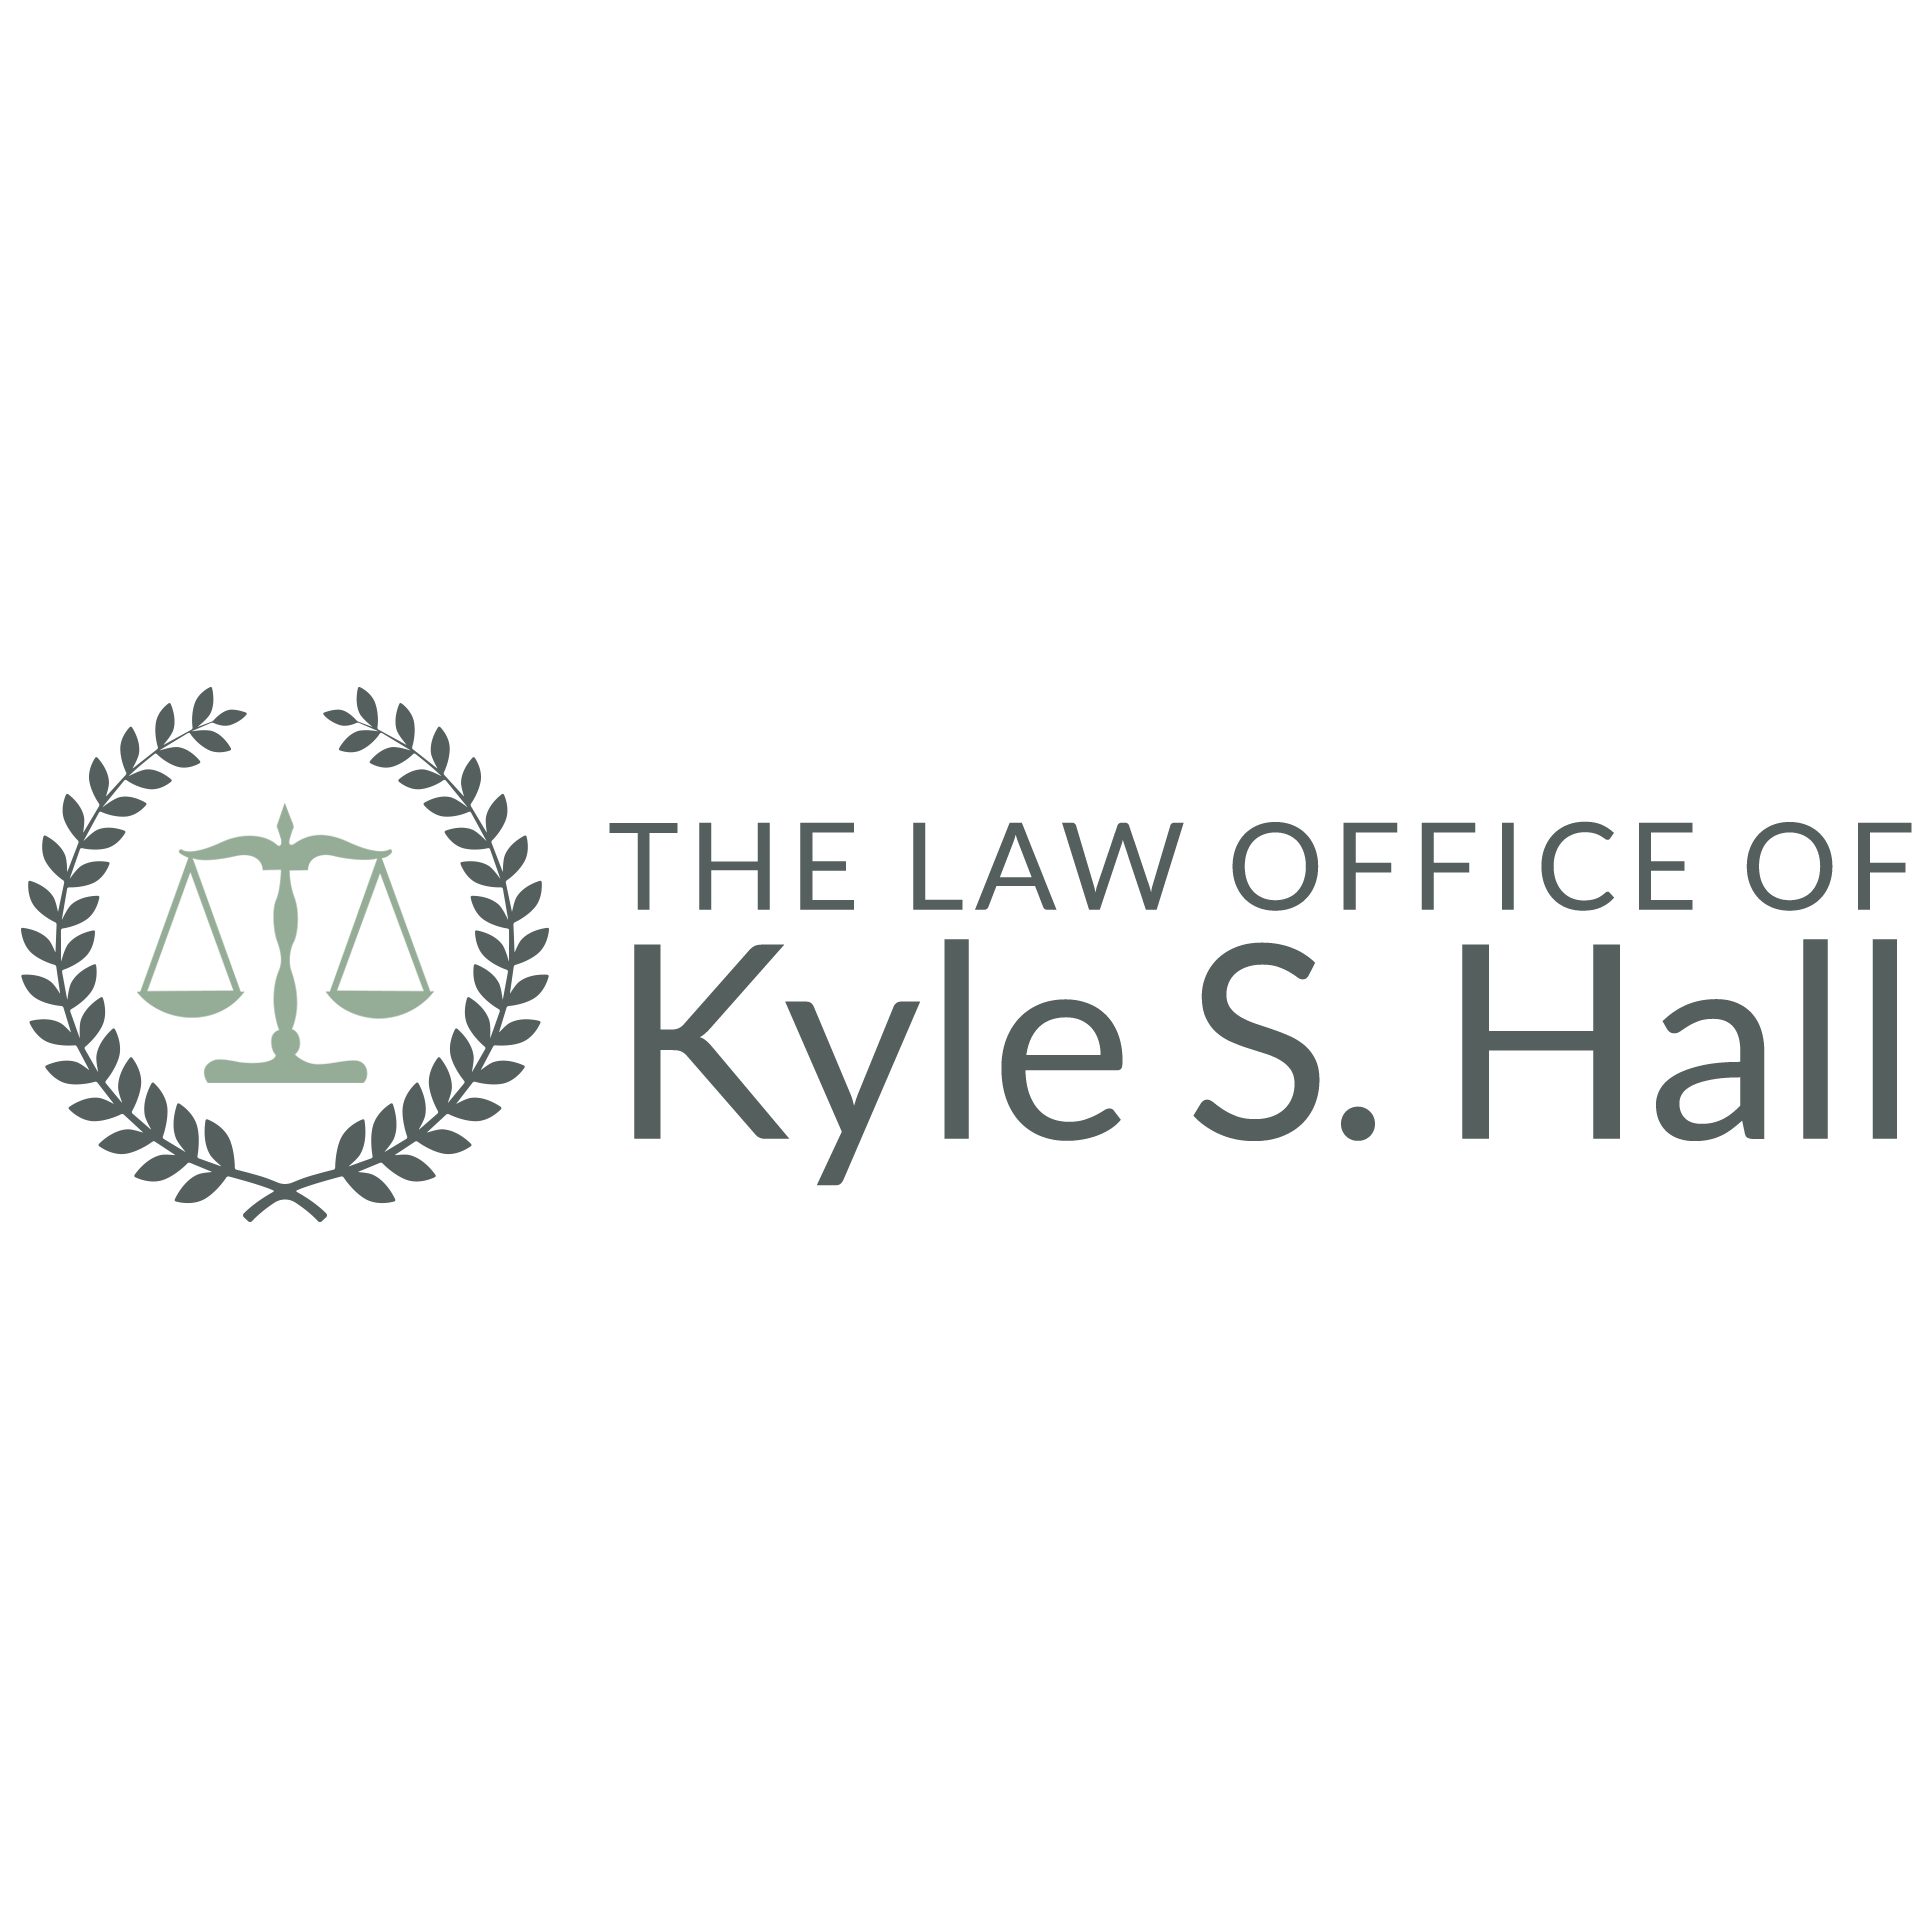 The Law Office of Kyle S. Hall